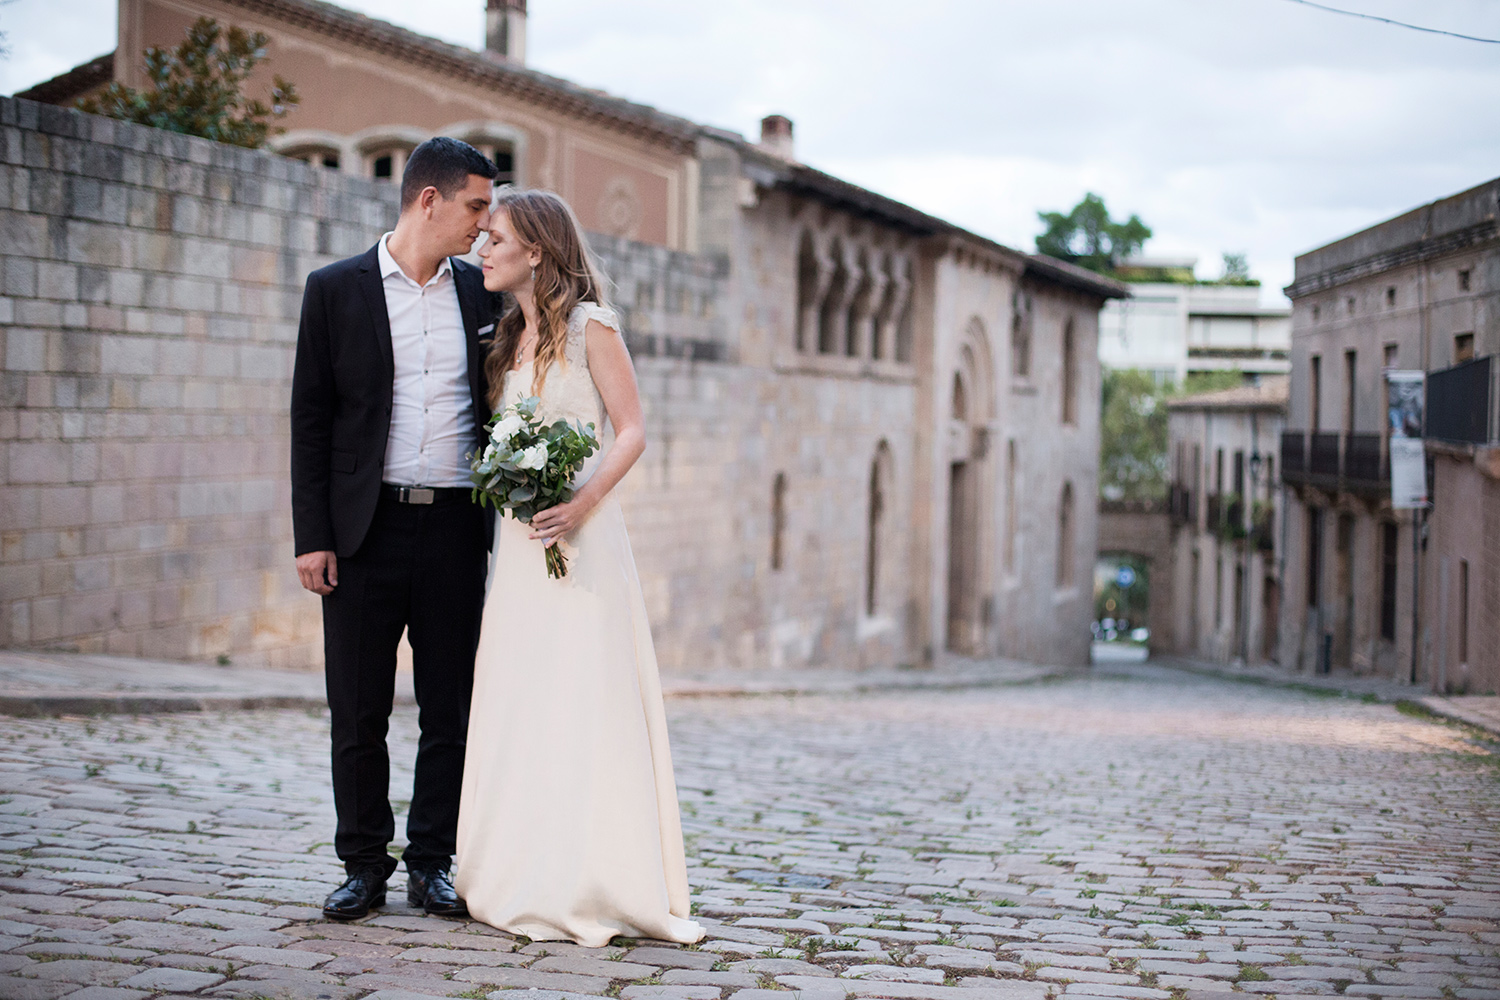 Wedding photographer Barcelona Natalia